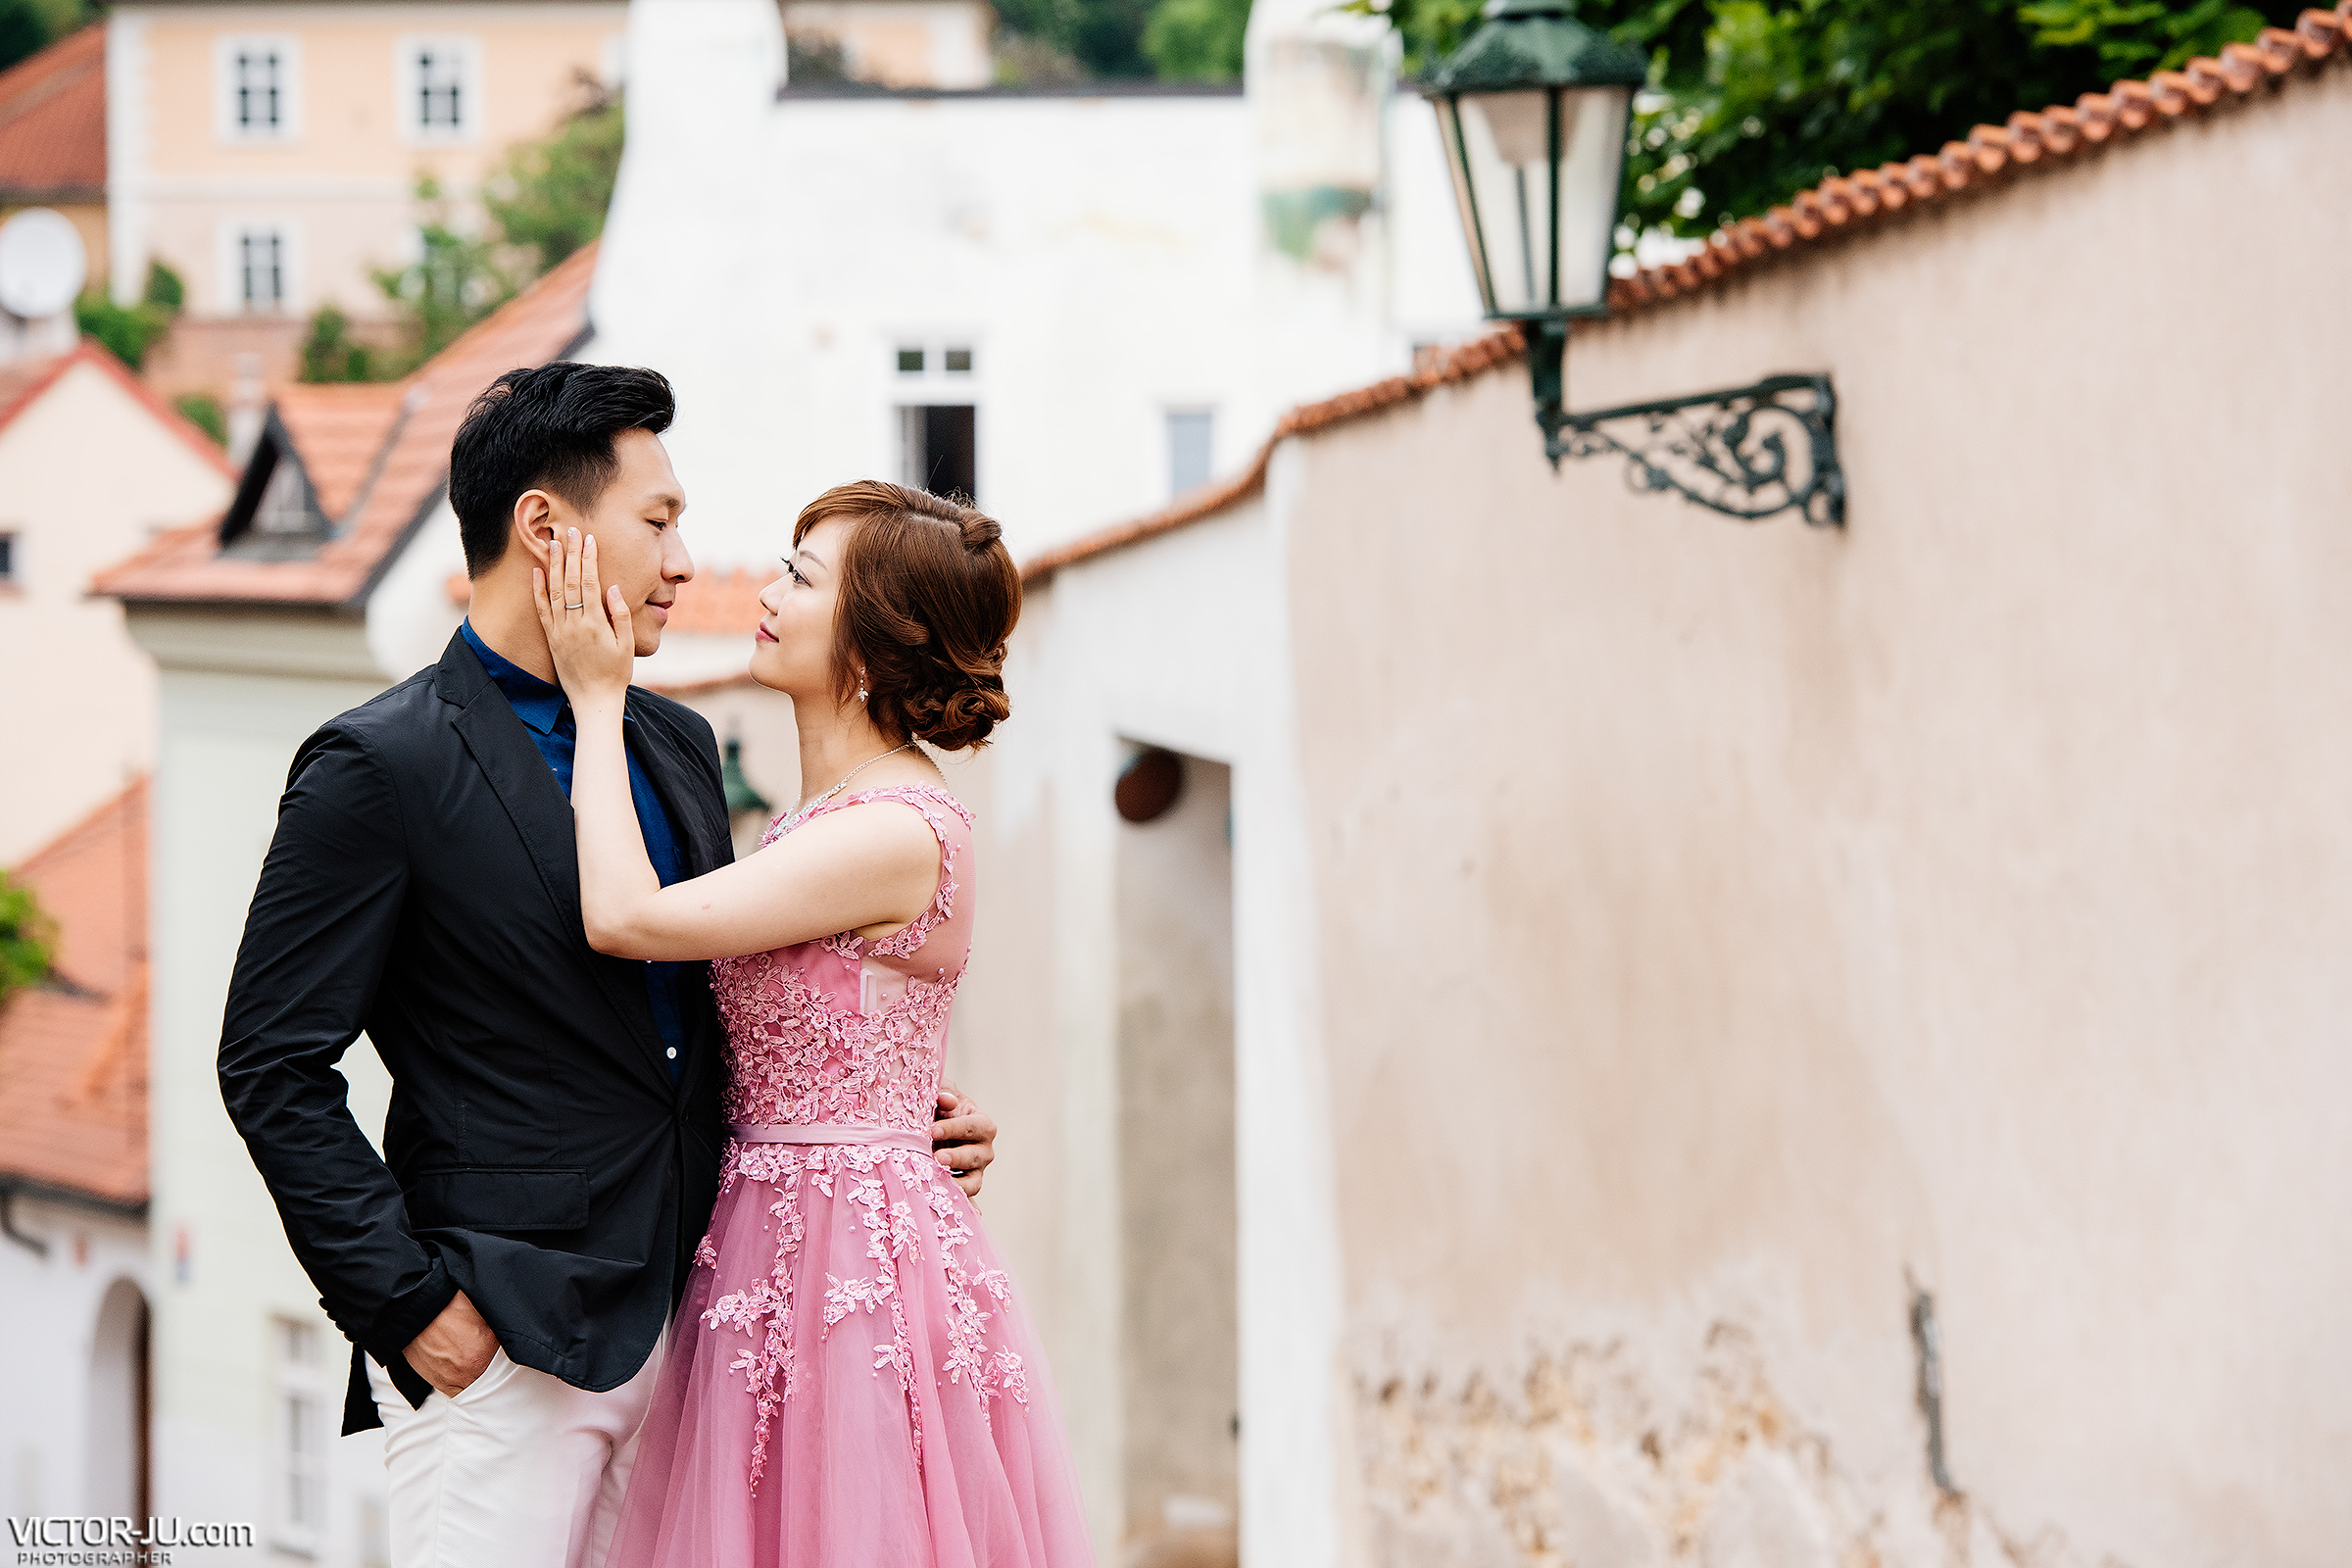 Prague wedding photo shoot